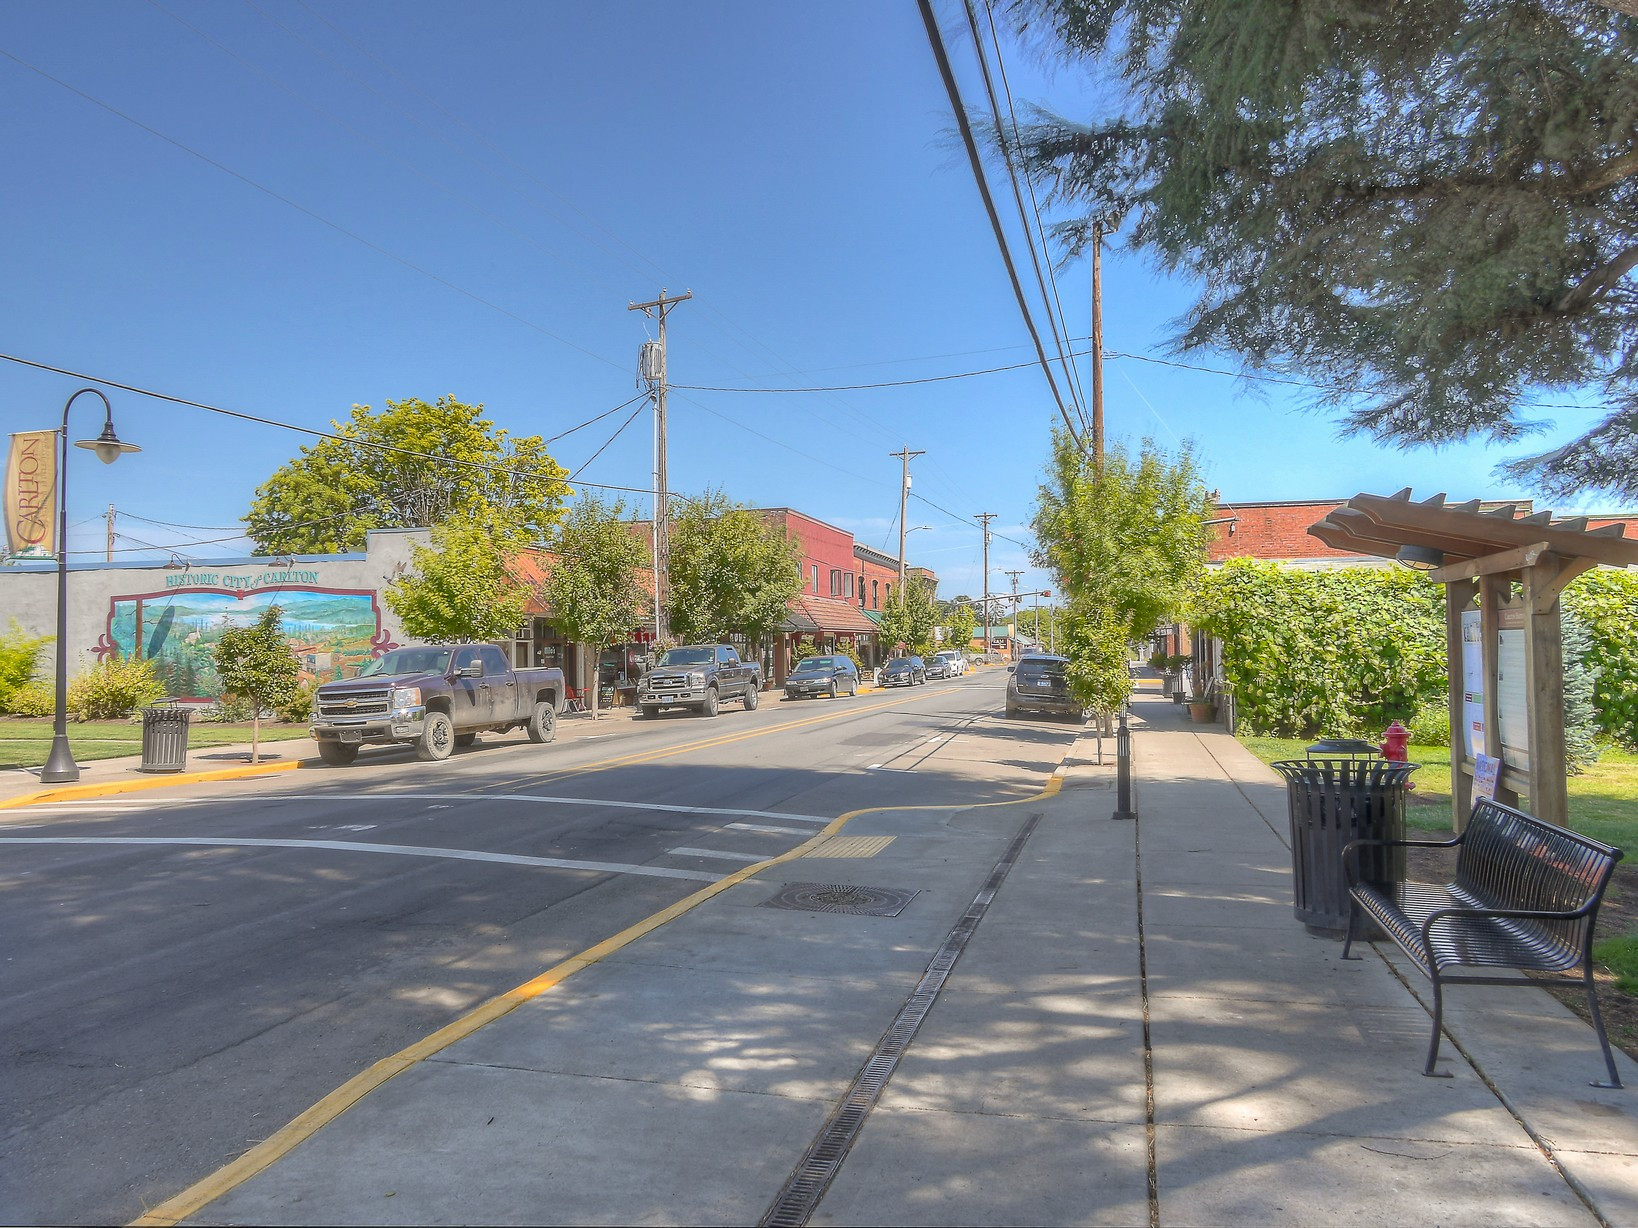 14-historic-downtown-carlton-oregon-the-kelly-group-real-estate